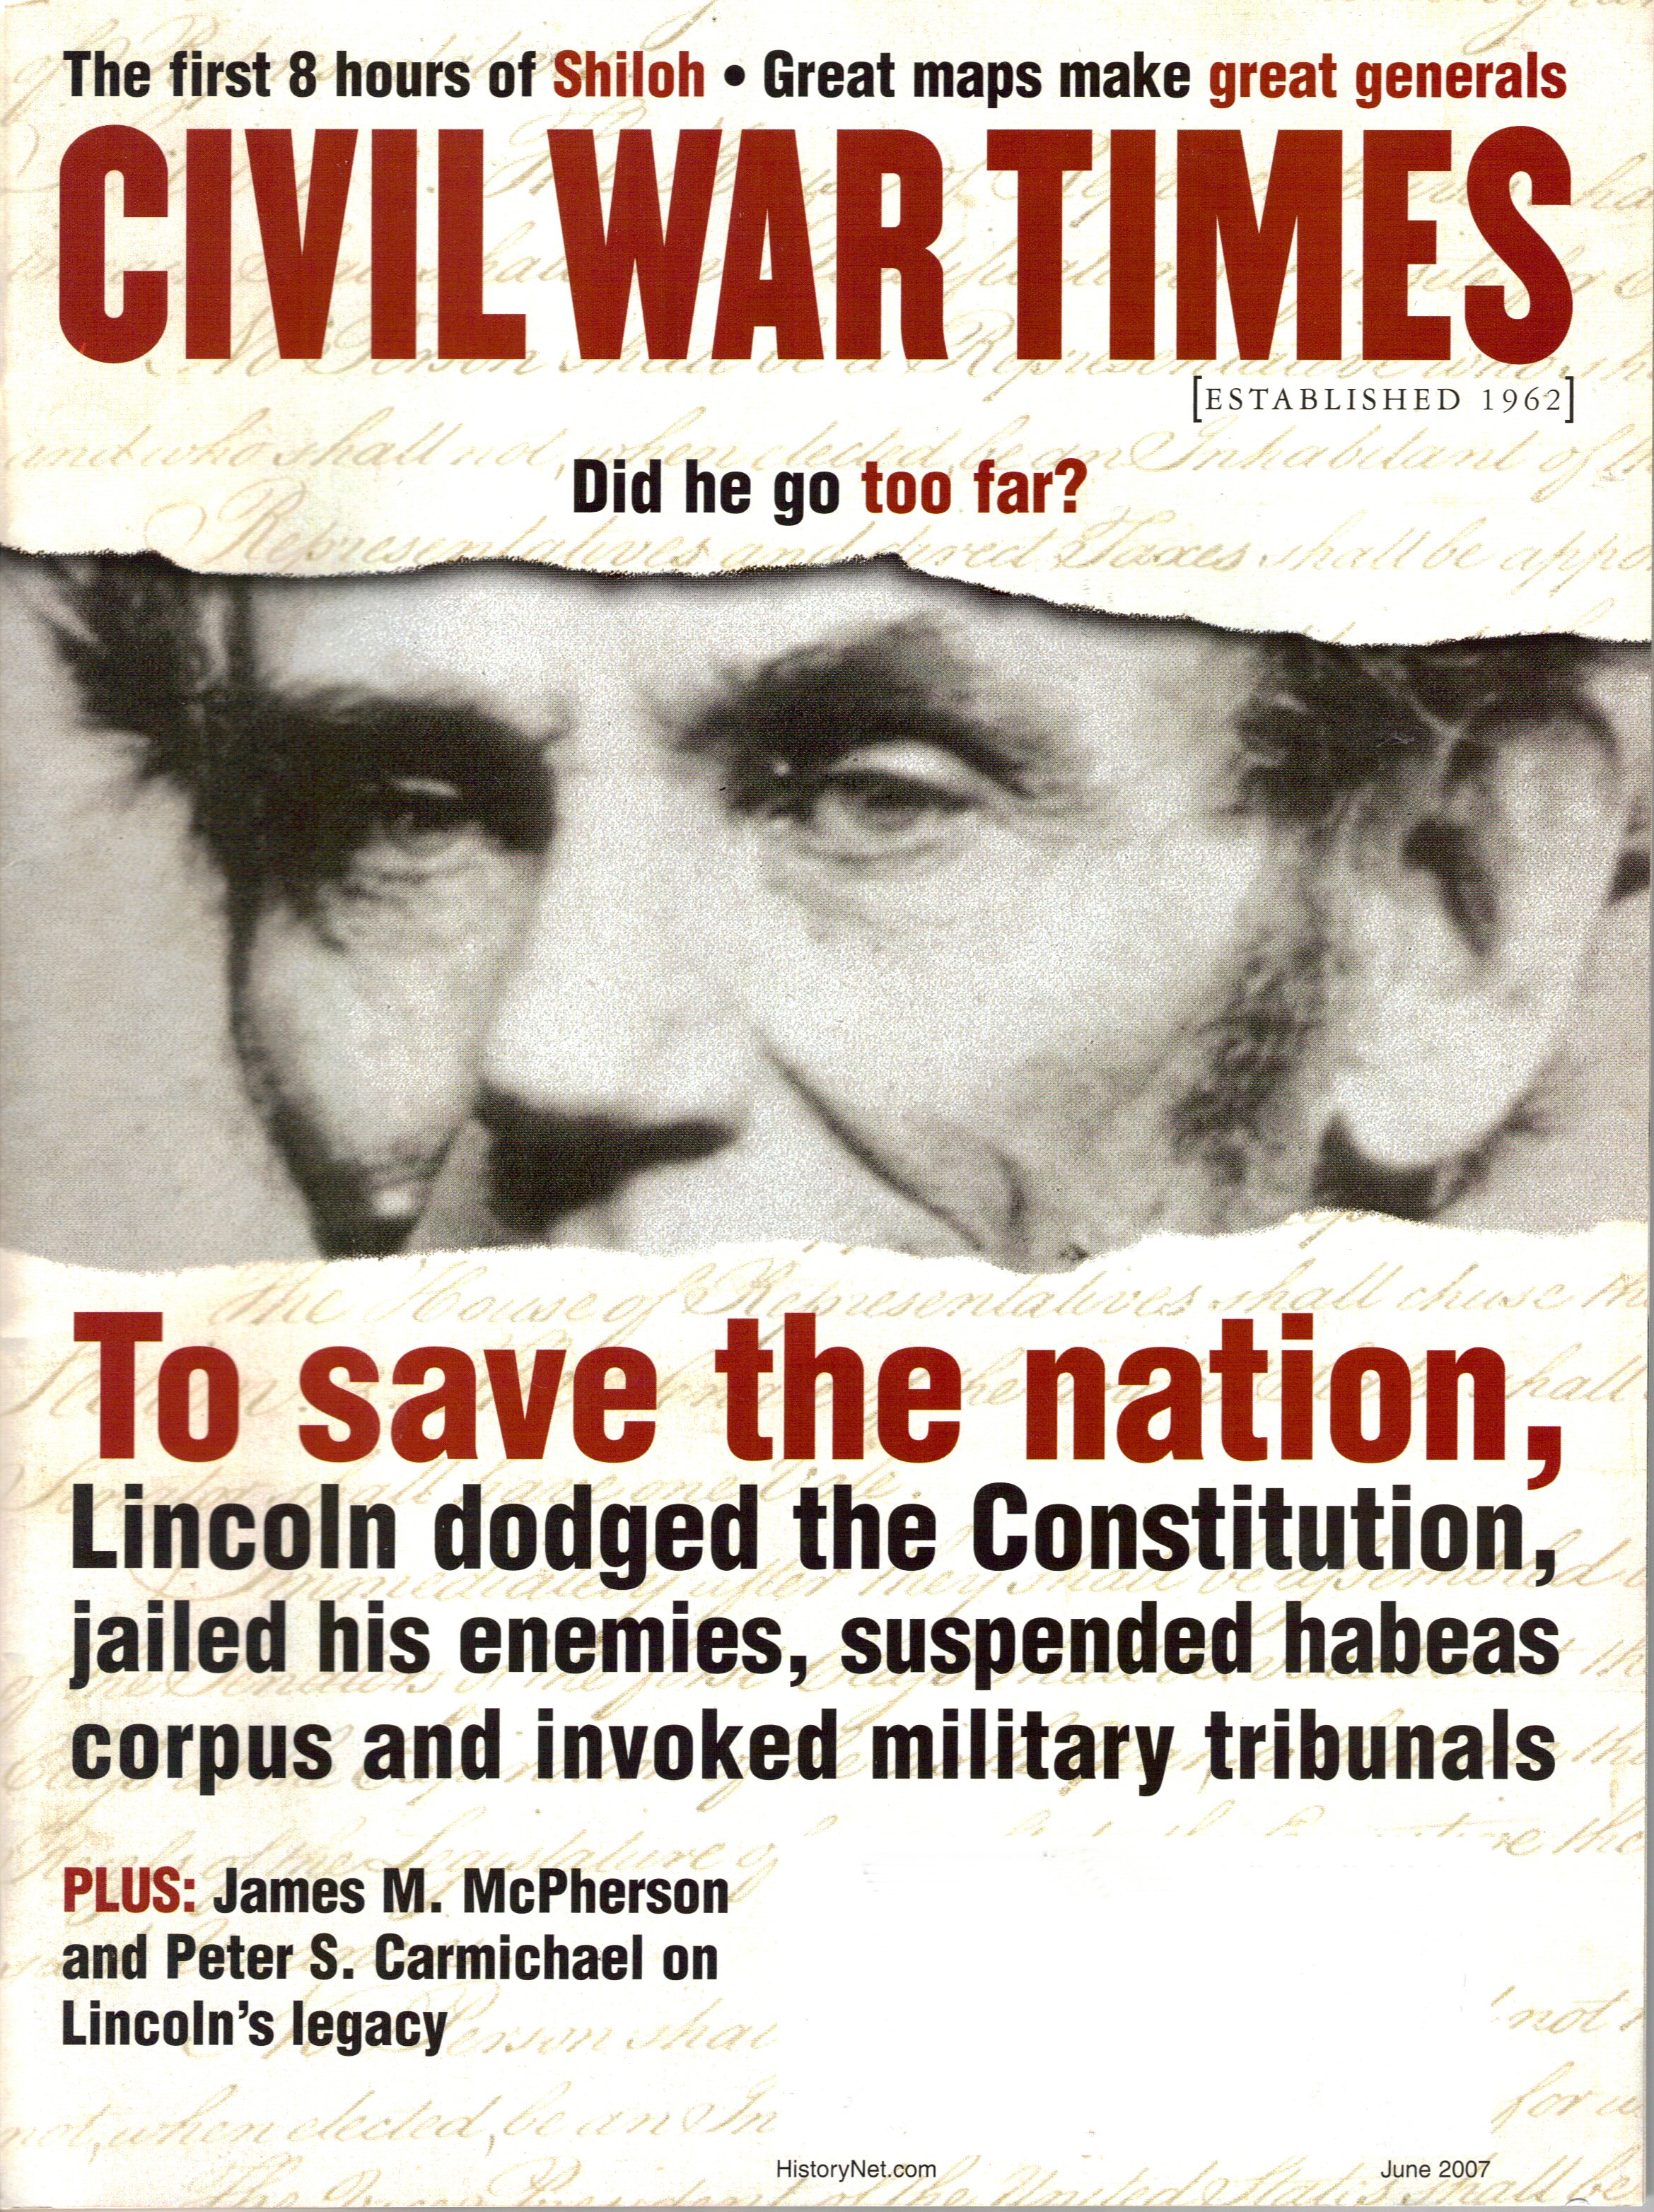 Civil War Times, Volume 46, Number 4 (June 2007)